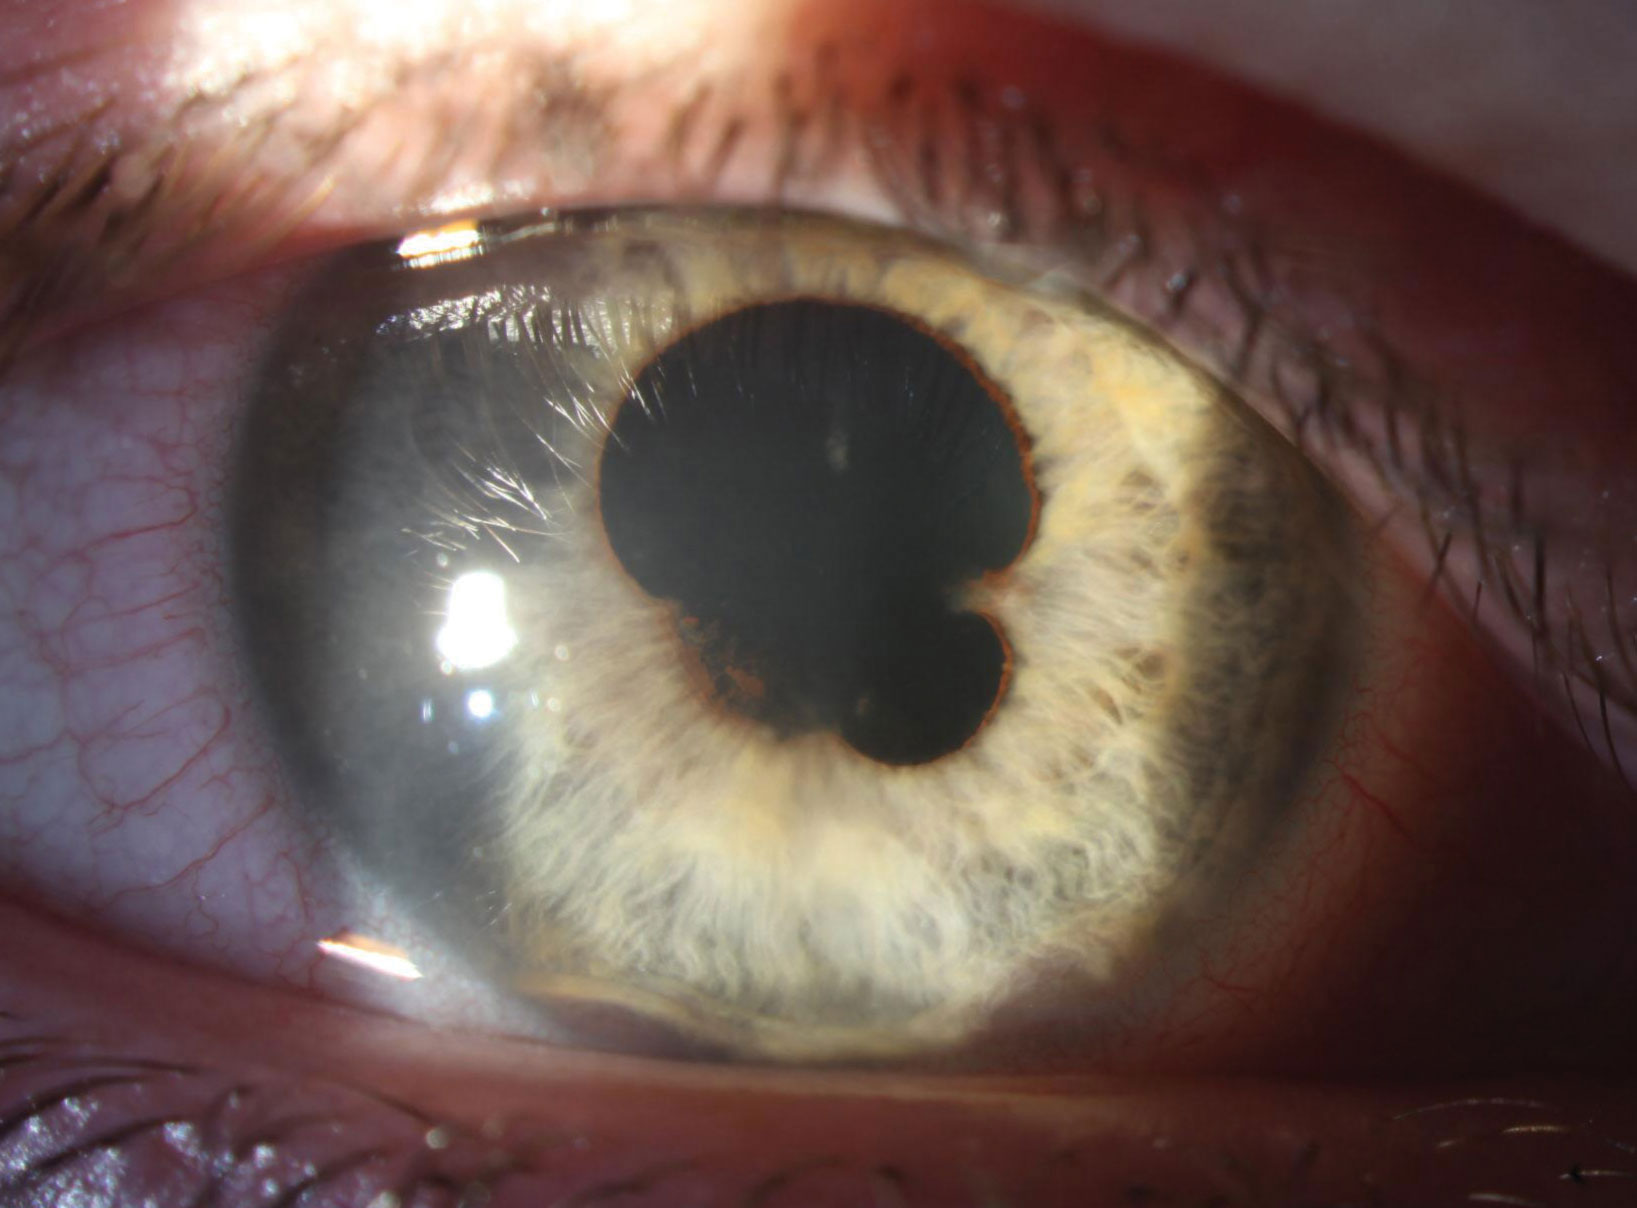 Broad and extensive posterior synechia are present in the right eye at presentation. Substantial anterior synechia are also apparent at 5 o'clock and 7 o'clock.